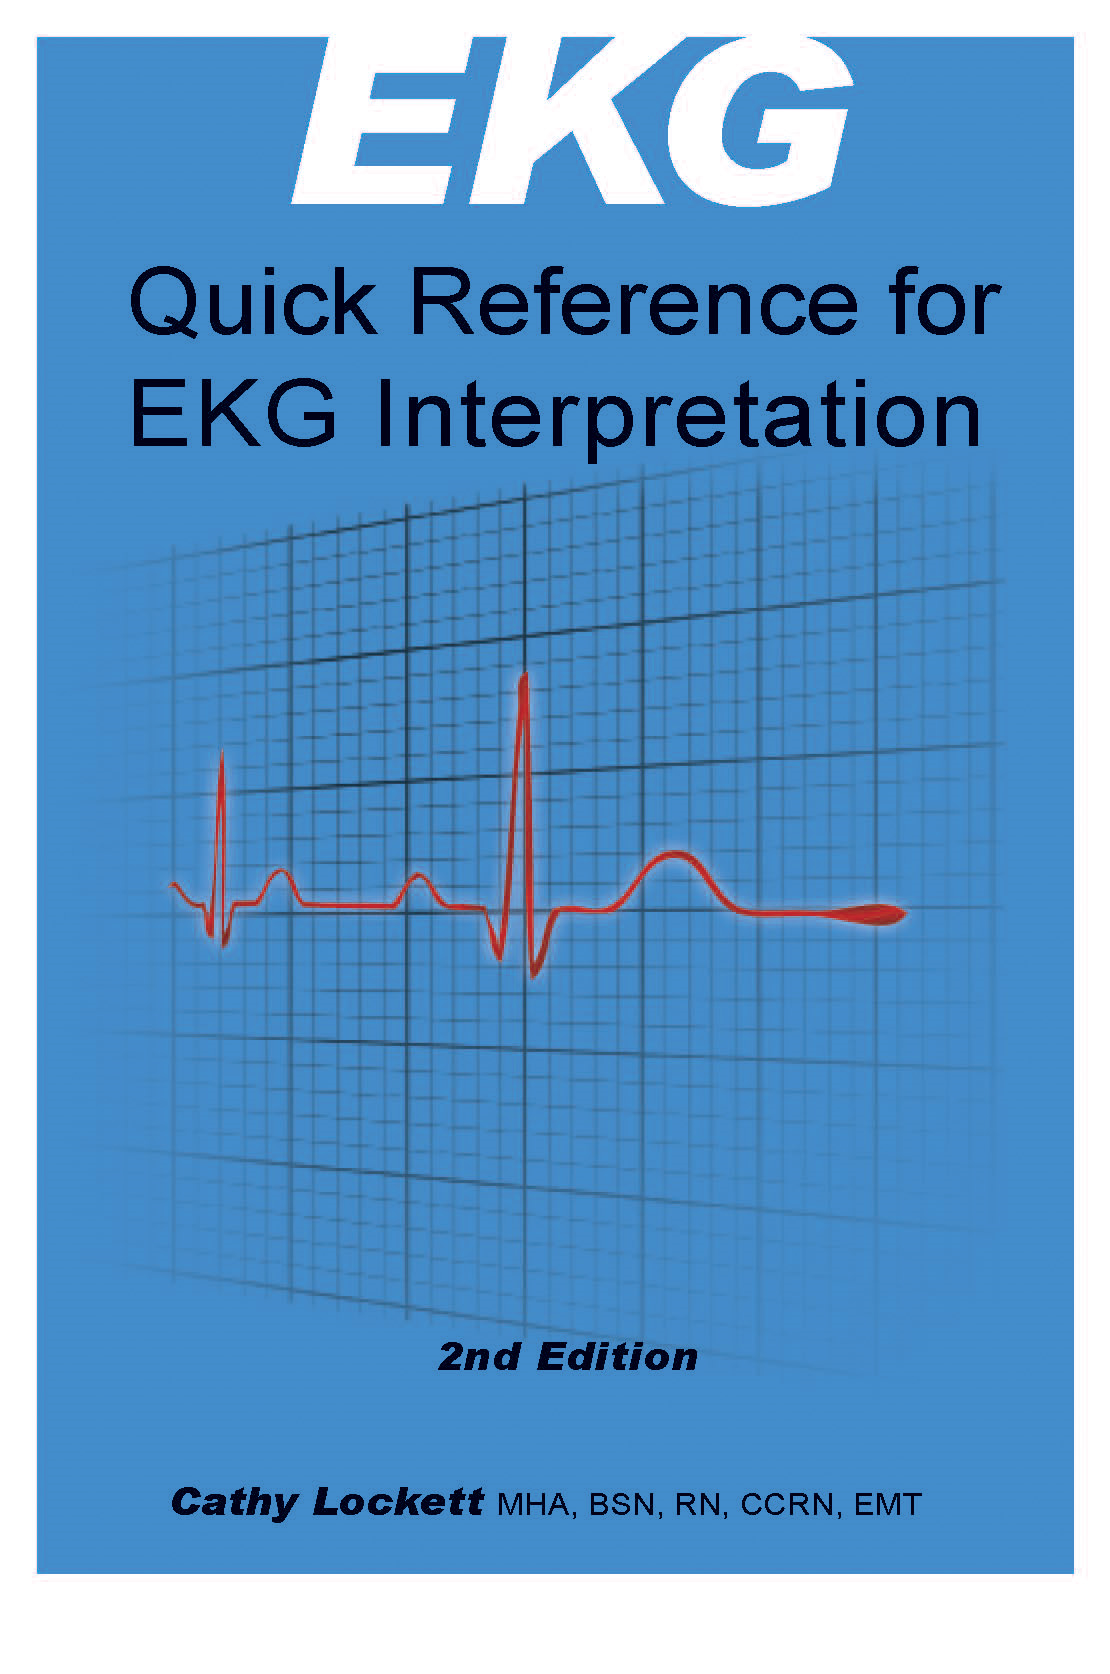 EKG Quick Reference for Interpretation